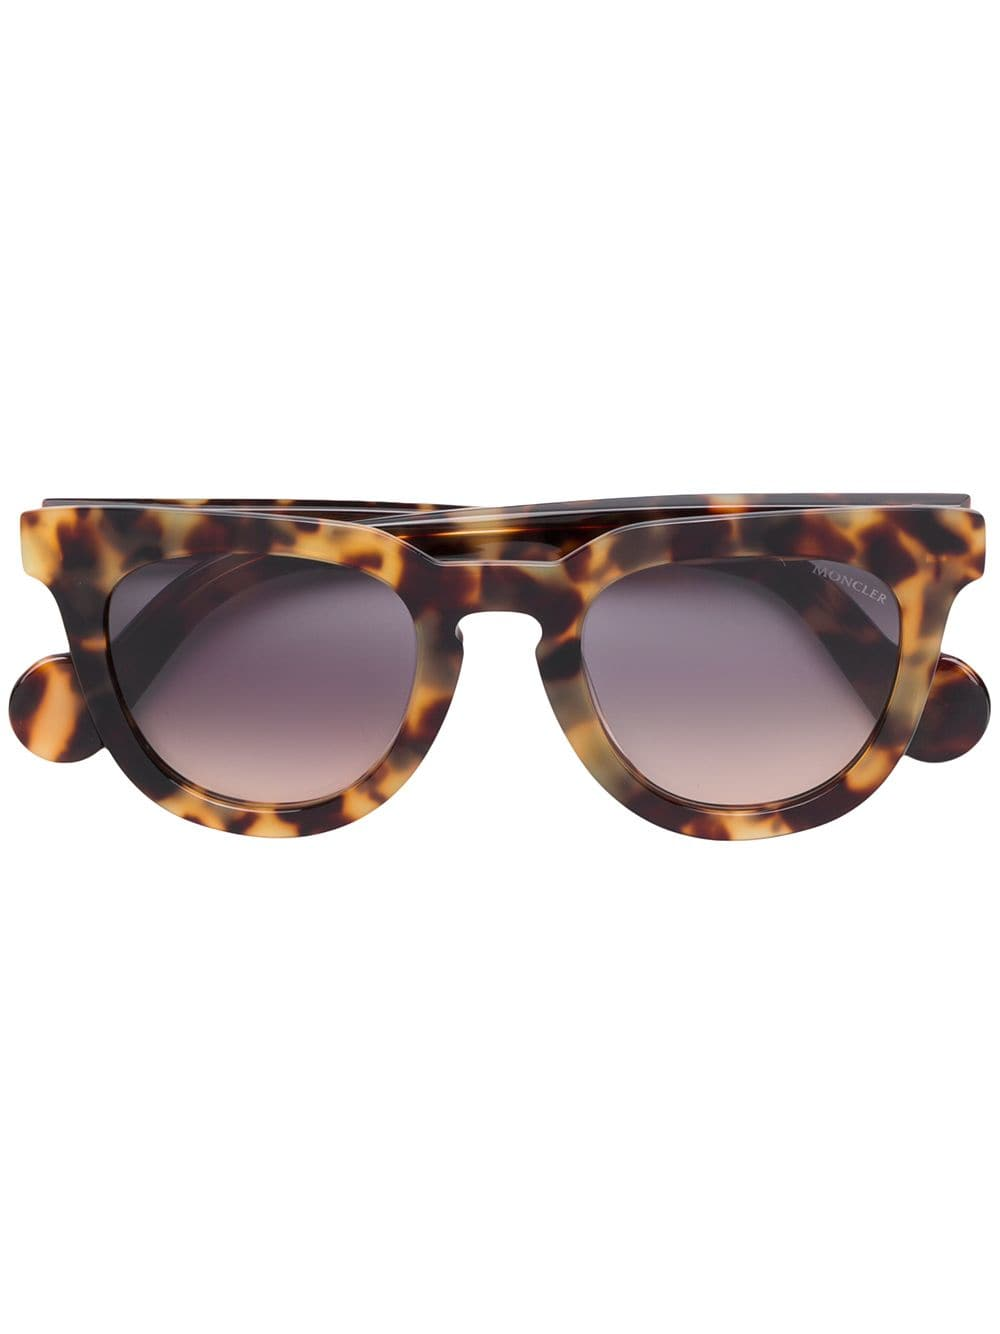 1dc09c6304e moncler-eyewear-tortoiseshell-square-sunglasses -brown-farfetch-com-photo.jpg 1543895392